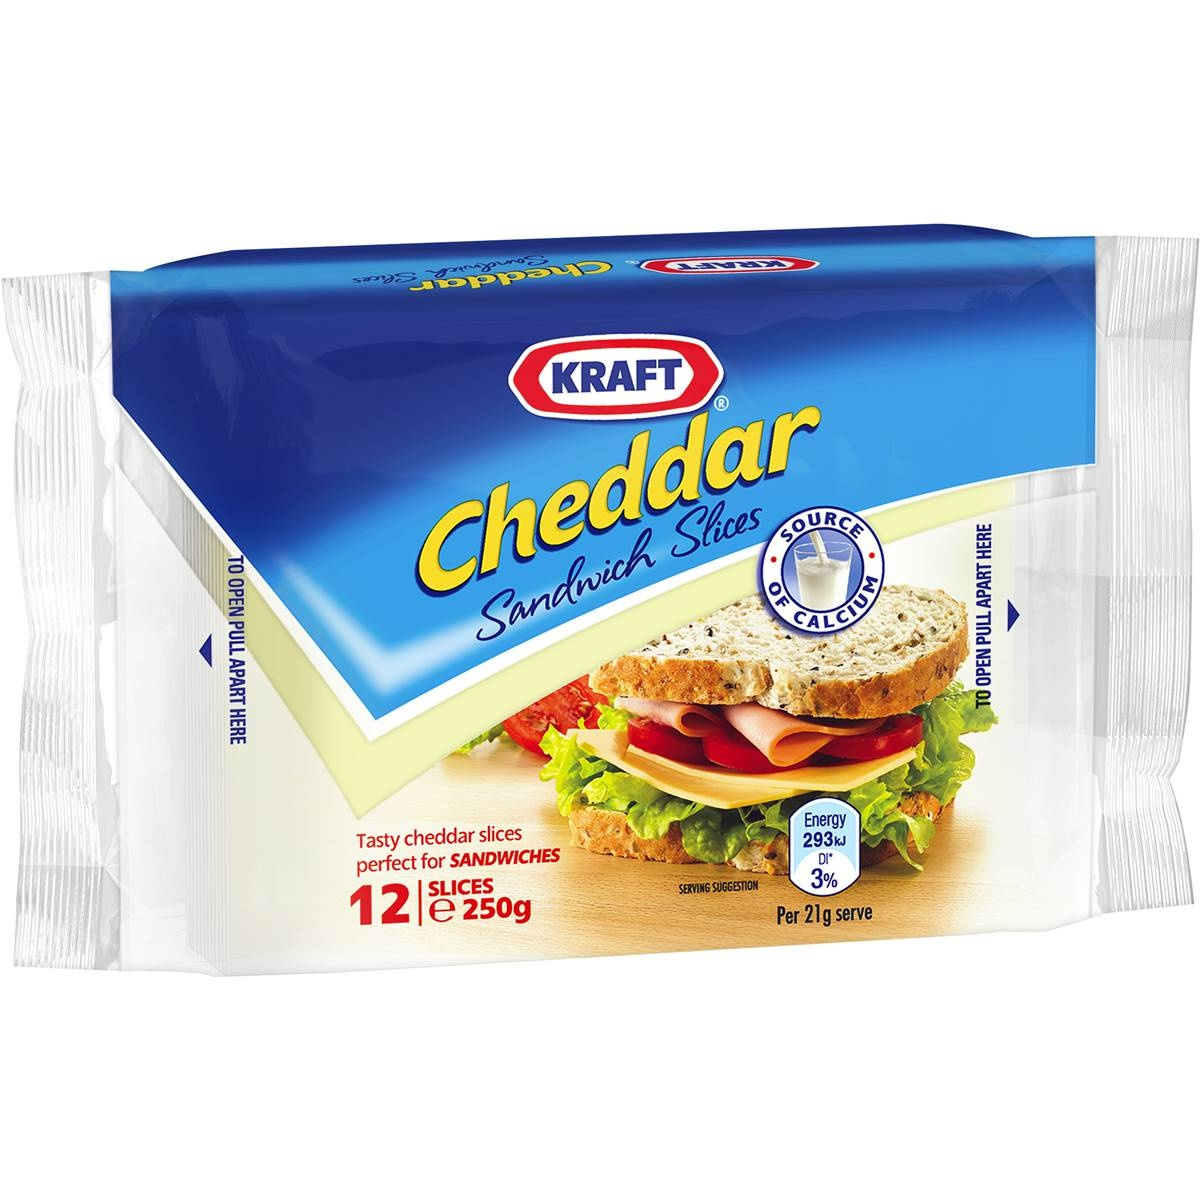 Kraft Cheese Cheddar Singles Slices 250g - in Sri Lanka